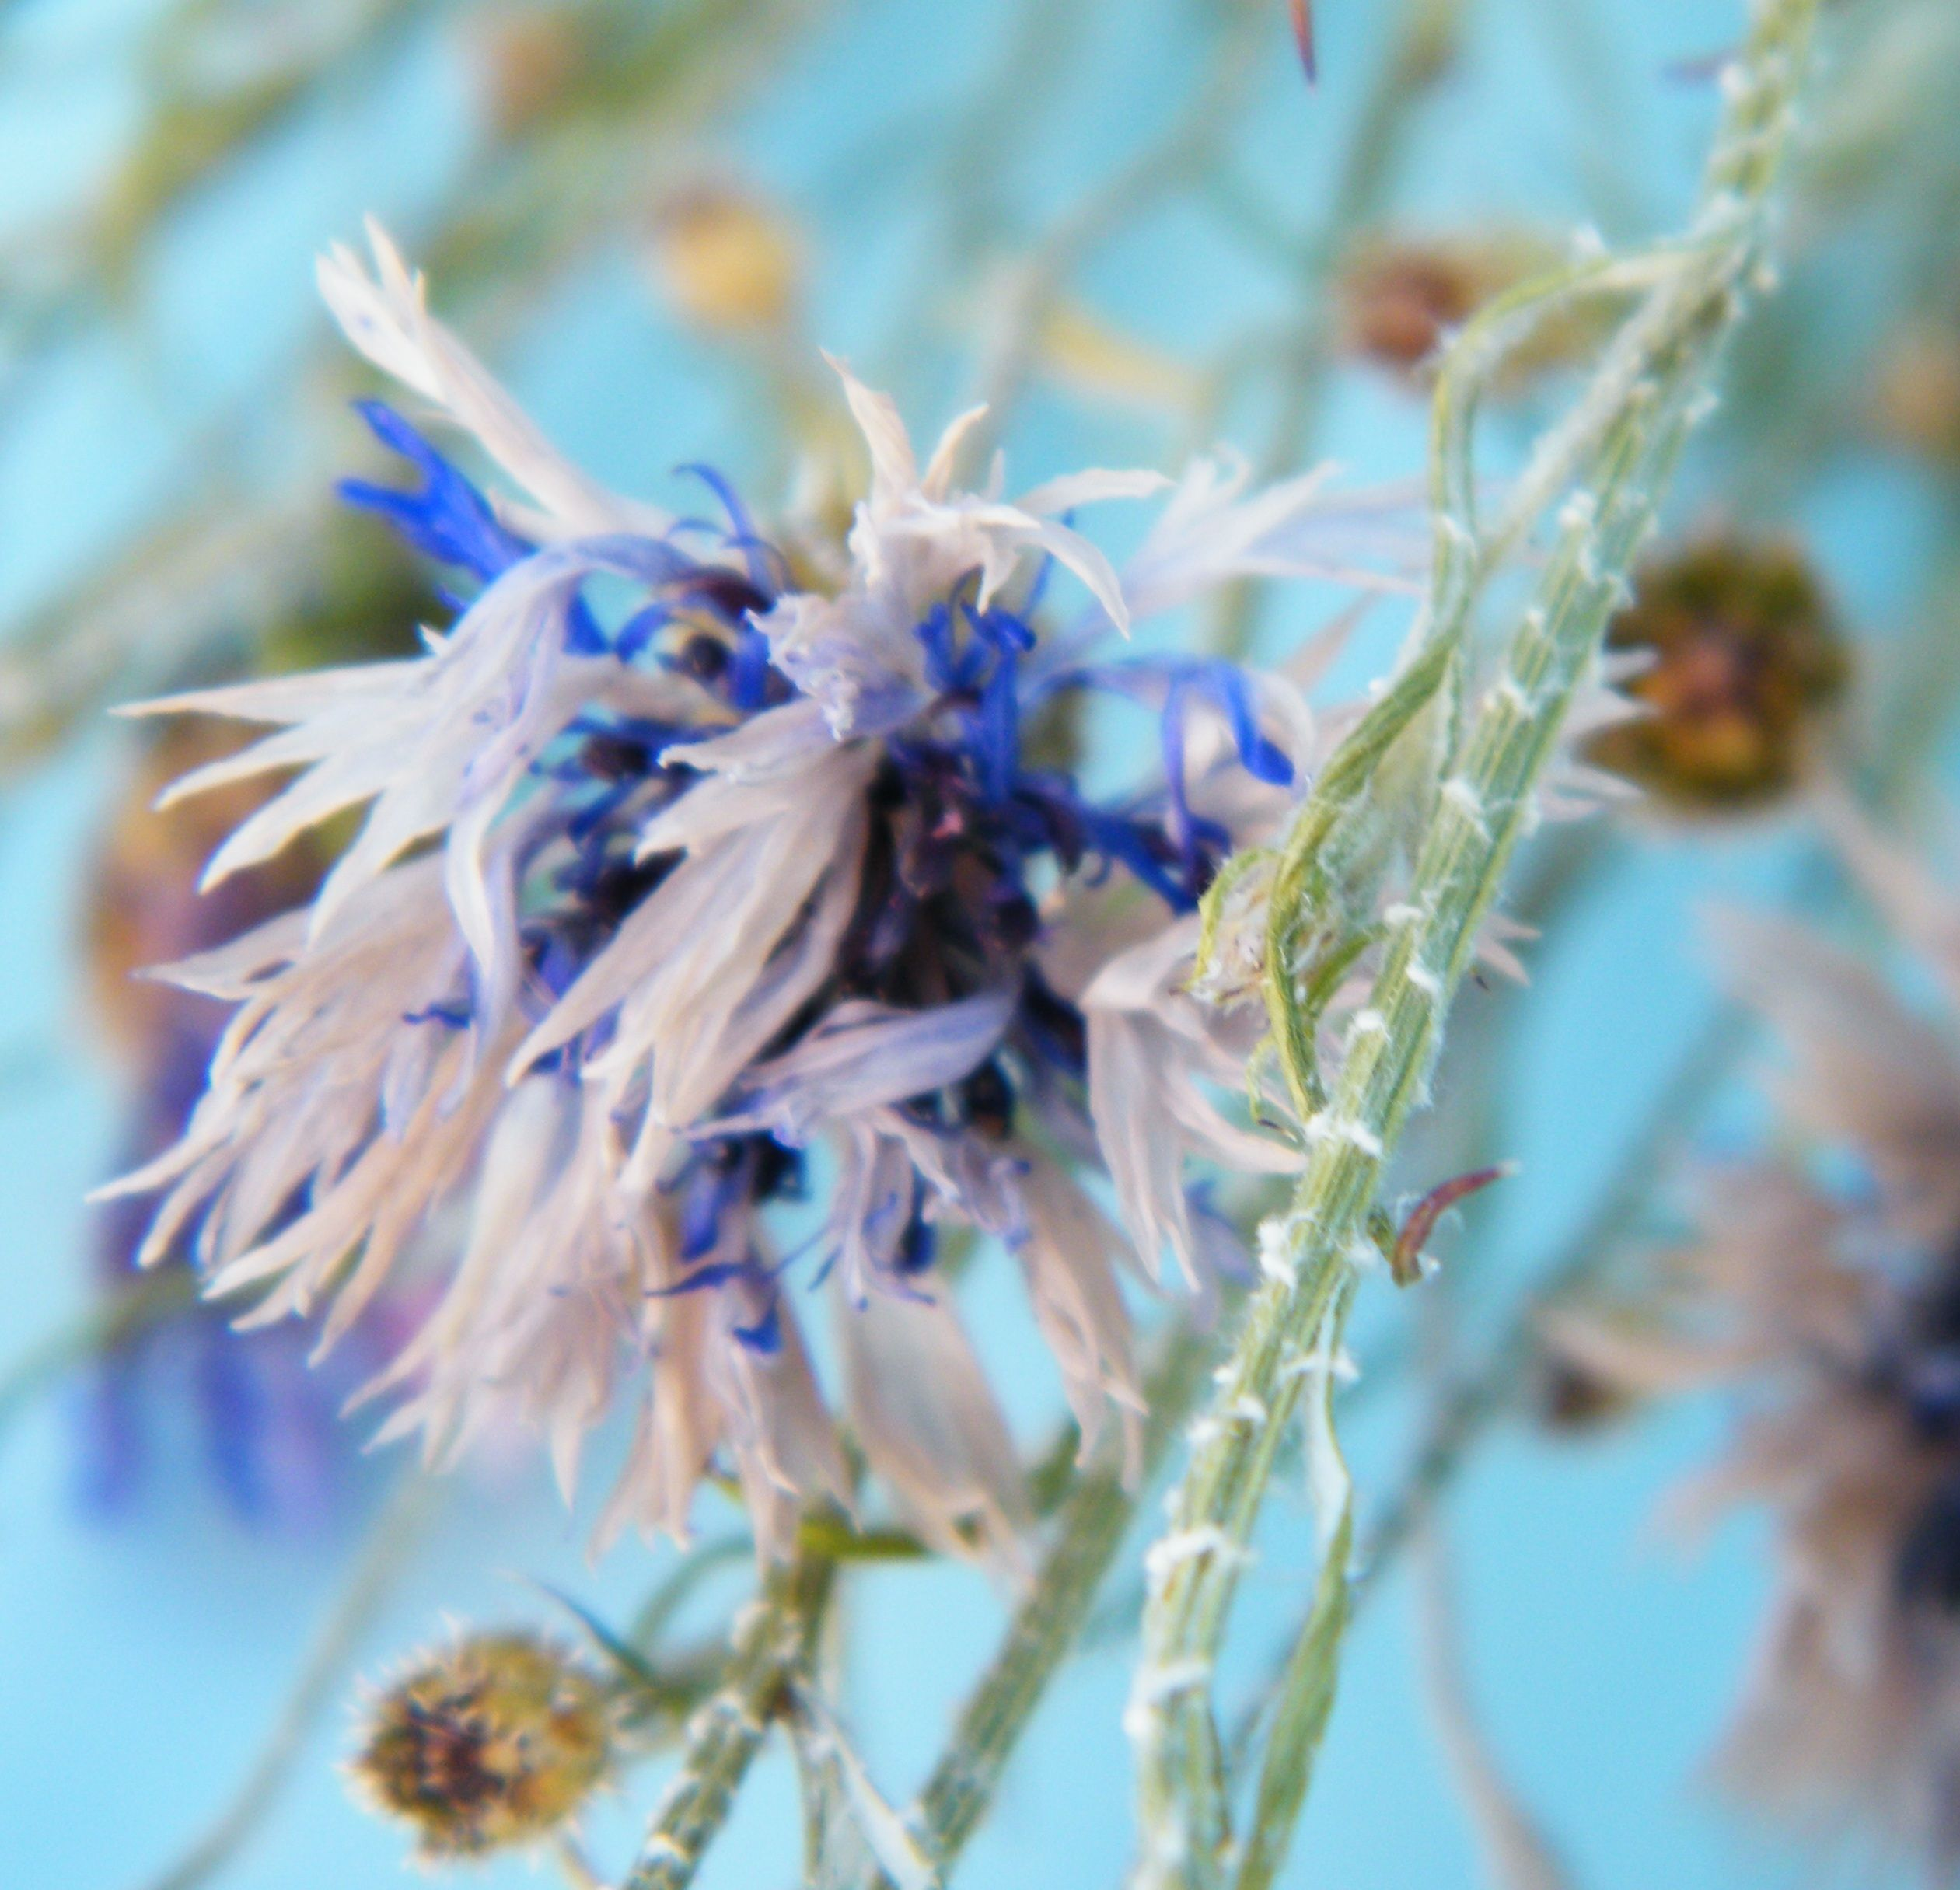 Faded dried cornflowers with white outer petals and blue